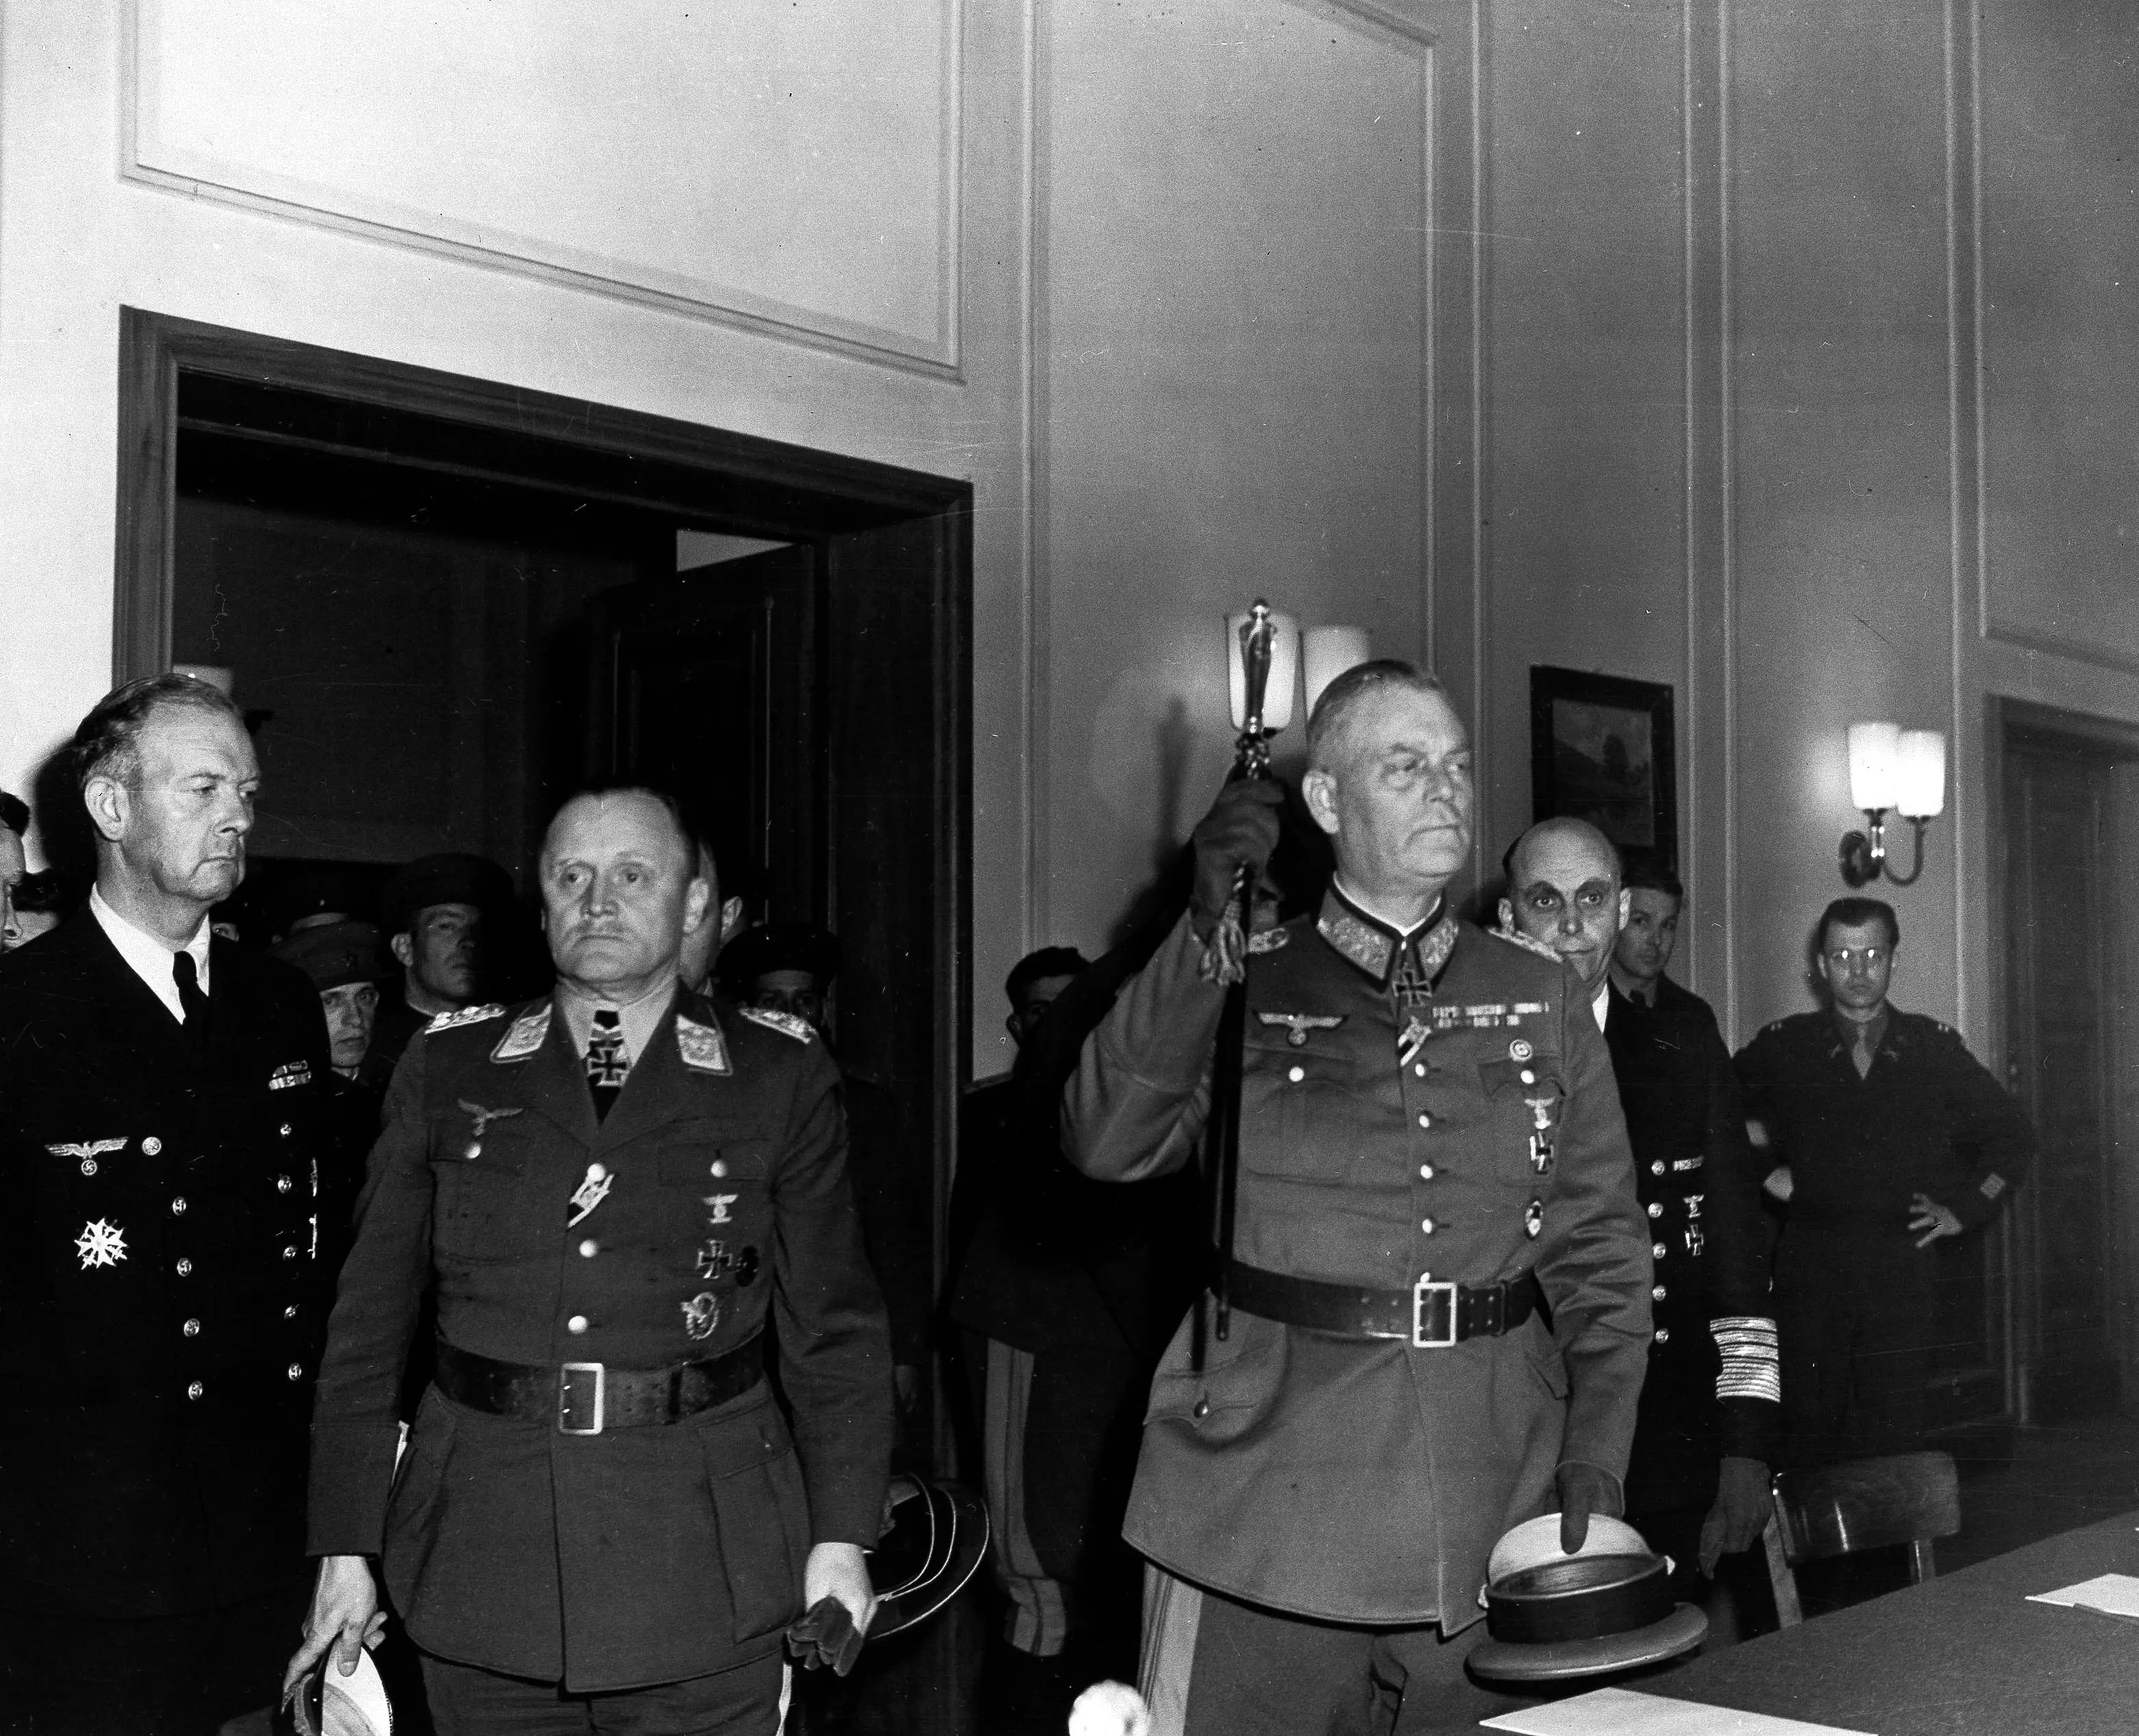 From Business Insider: Col. Gen. Paul Stumpff, second left, Luftwaffe commander; Field Marshal Wilhelm Keitel, German army commander, raising baton; and Gen. Adm. Hans von Freideburg, rear, commander of the German navy; emerge after Germany's unconditional surrender was formally ratified in Berlin, May 9, 1945. (AP Photo/U.S. Signal Corps)